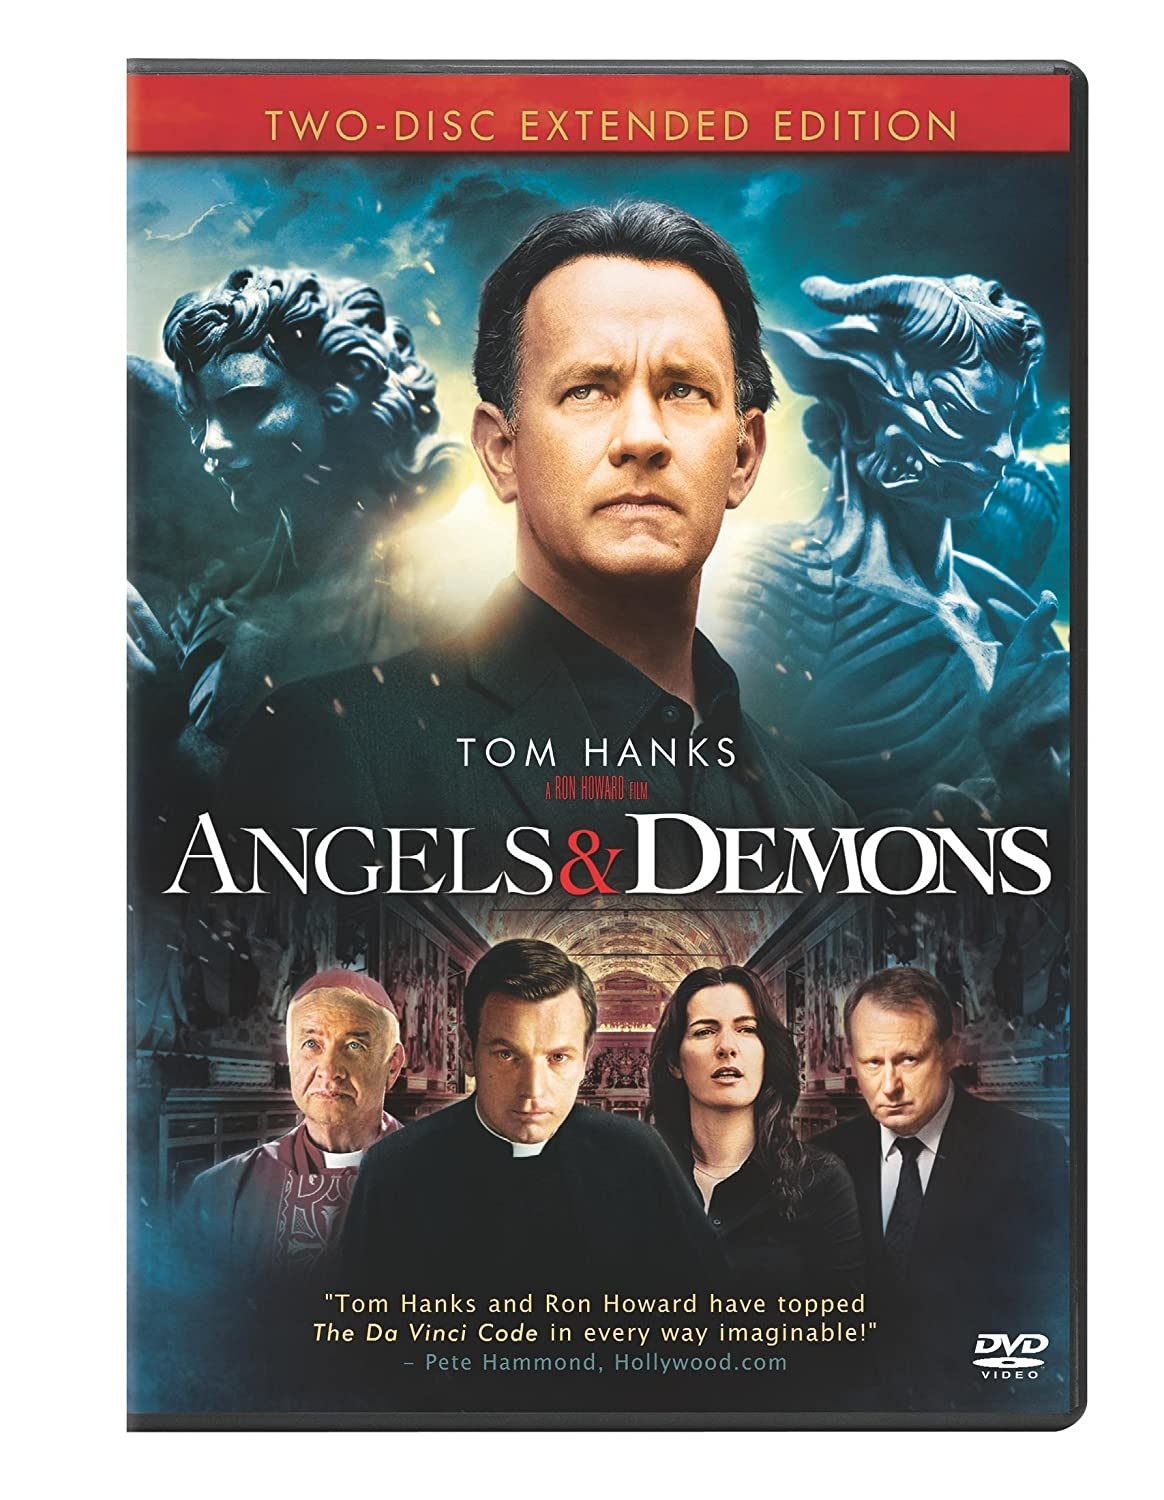 Amazon angels demons two disc extended edition david amazon angels demons two disc extended edition david pasquesi thure lindhardt tom hanks ewan mcgregor ayelet zurer stellan skarsgard buycottarizona